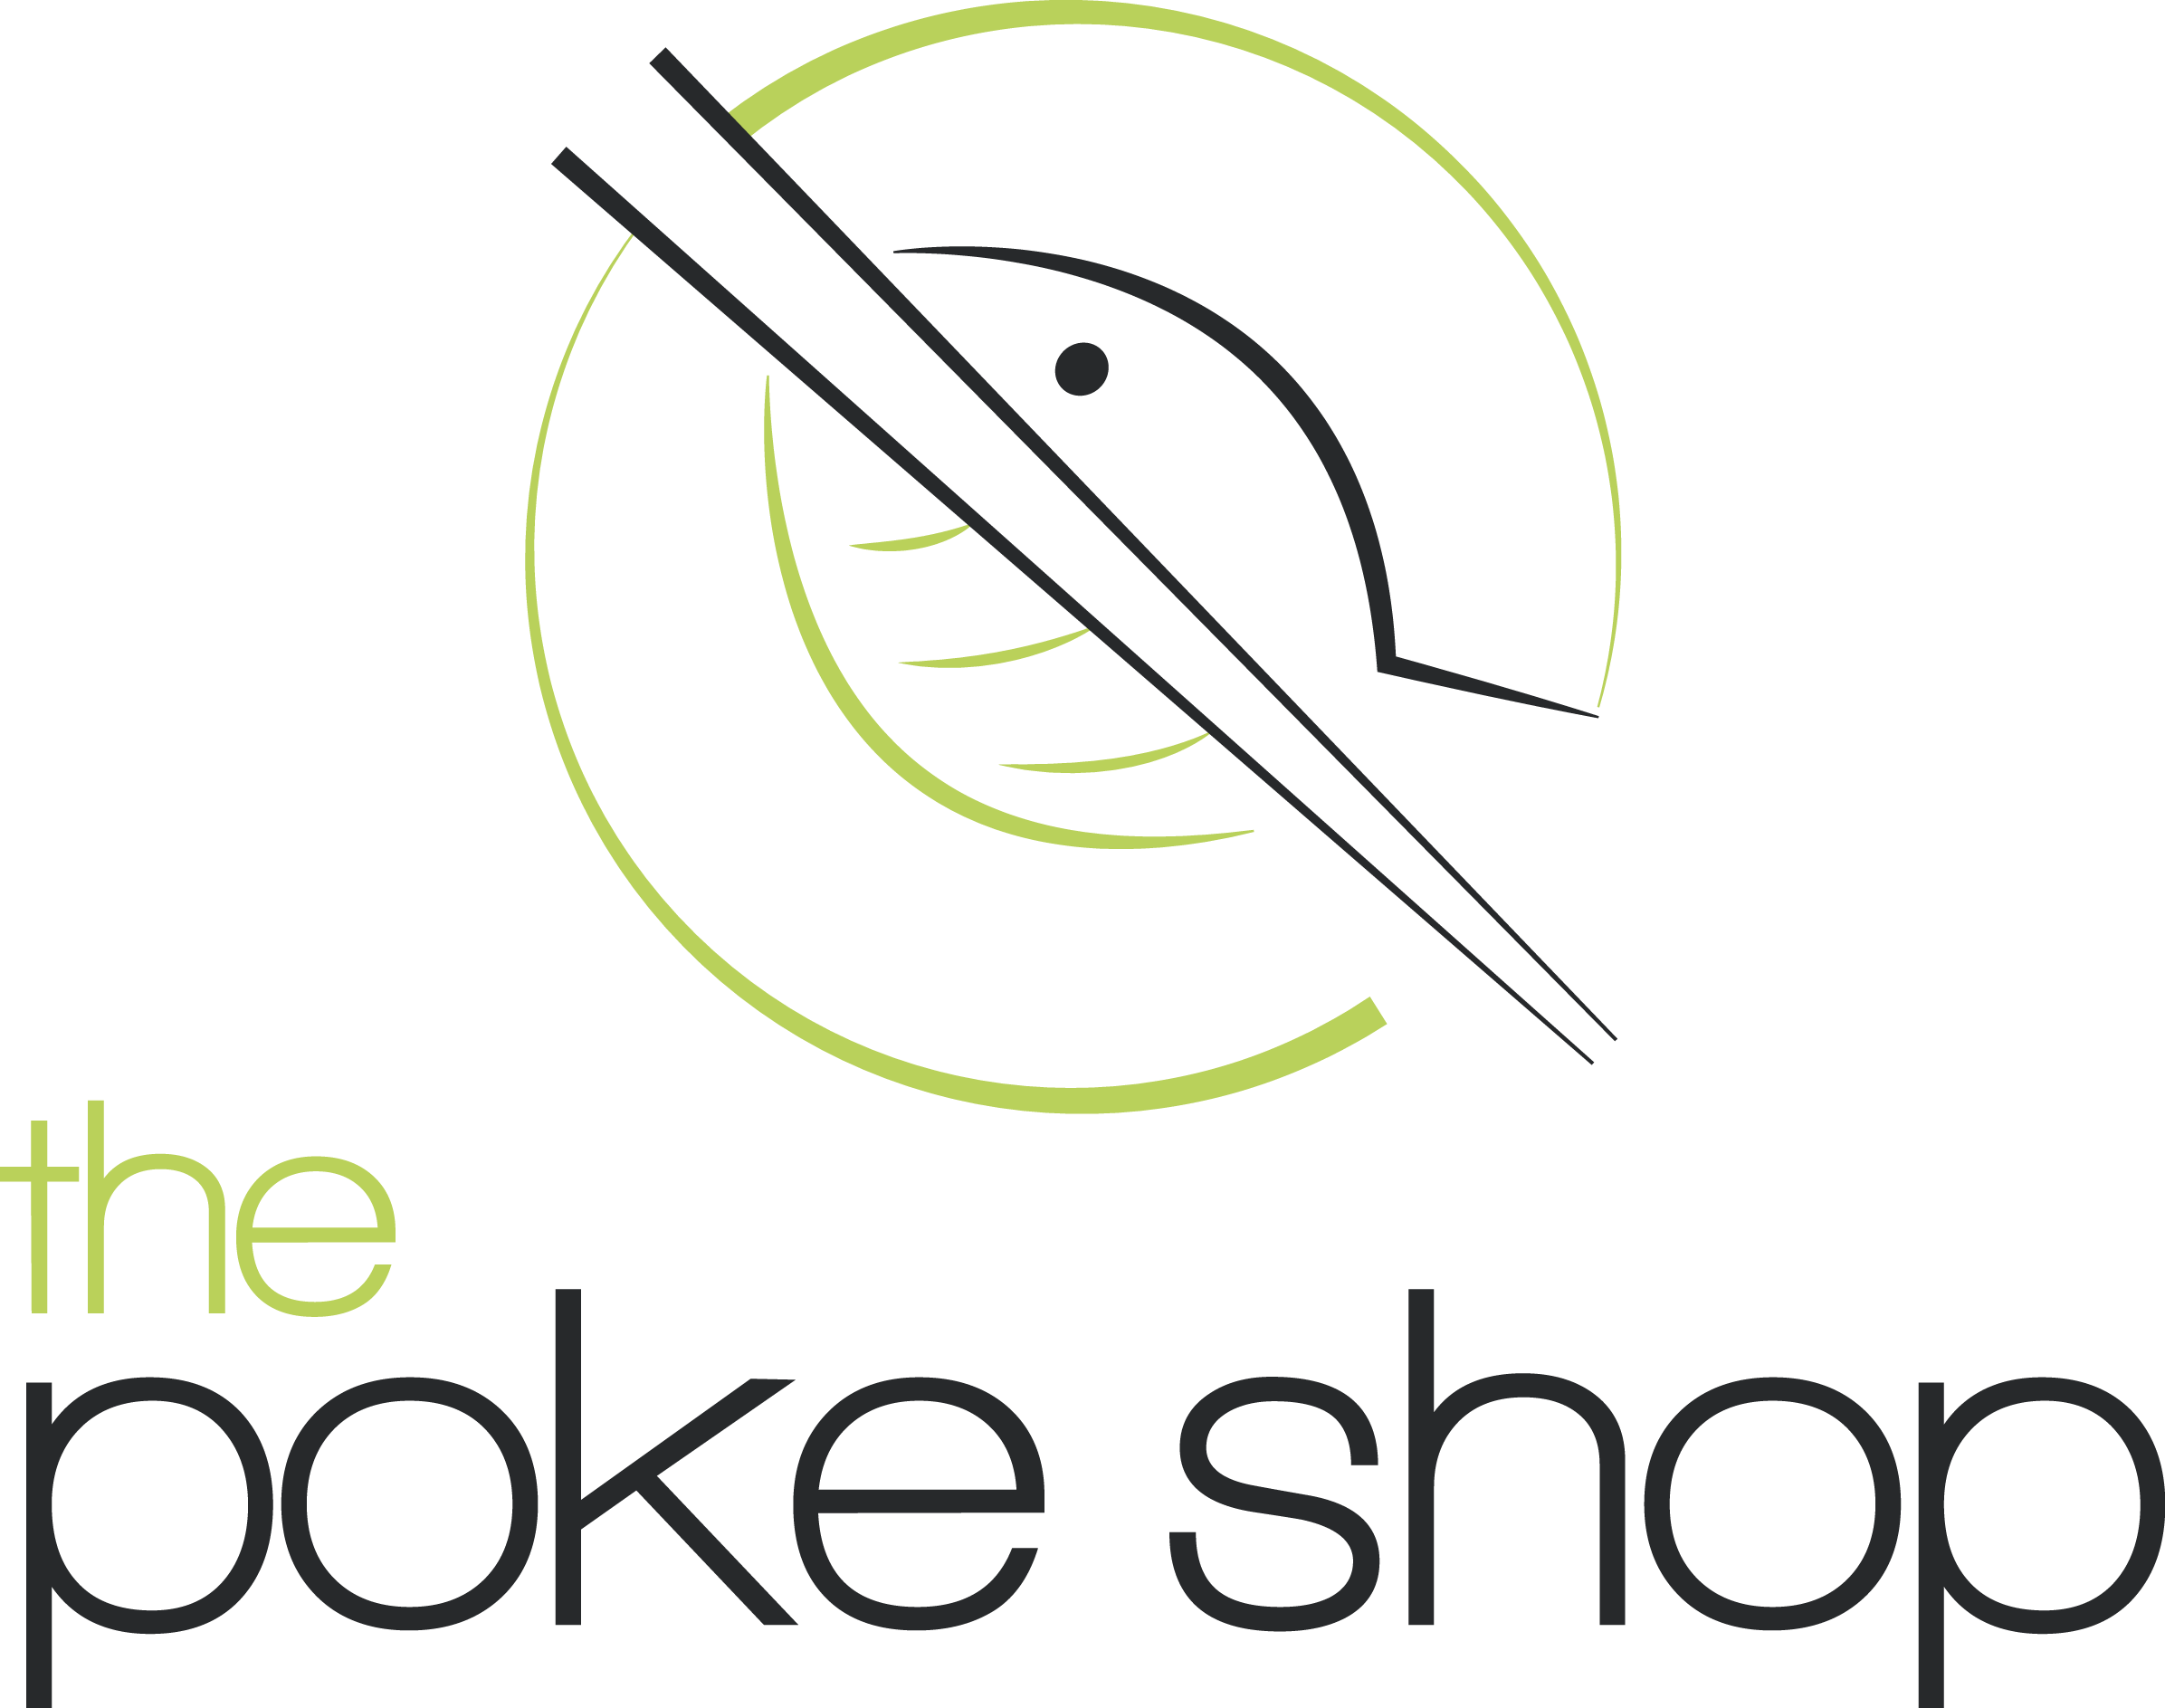 Logo-ThePokeShop-Officiel